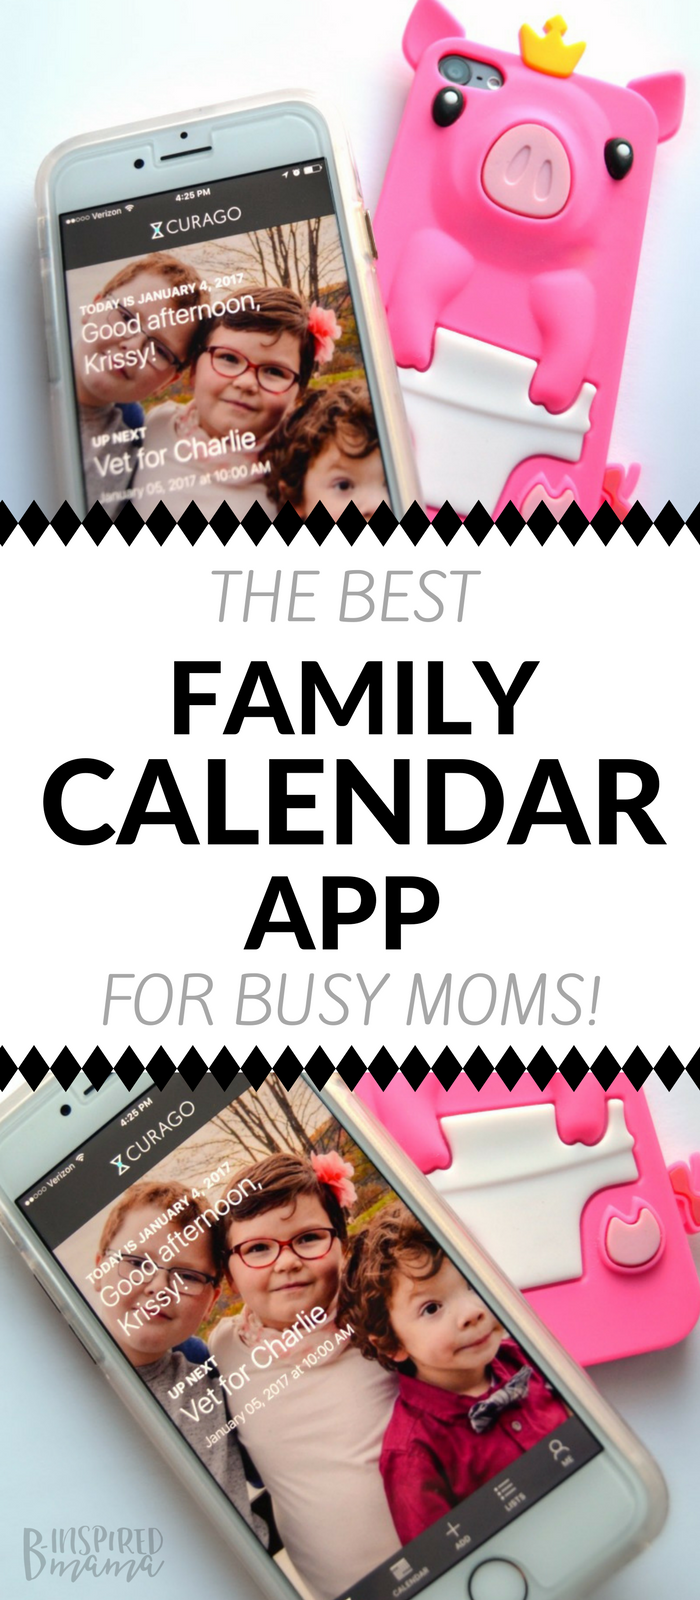 The BEST Family Calendar App - for busy moms and their kids - at B-Inspired Mama